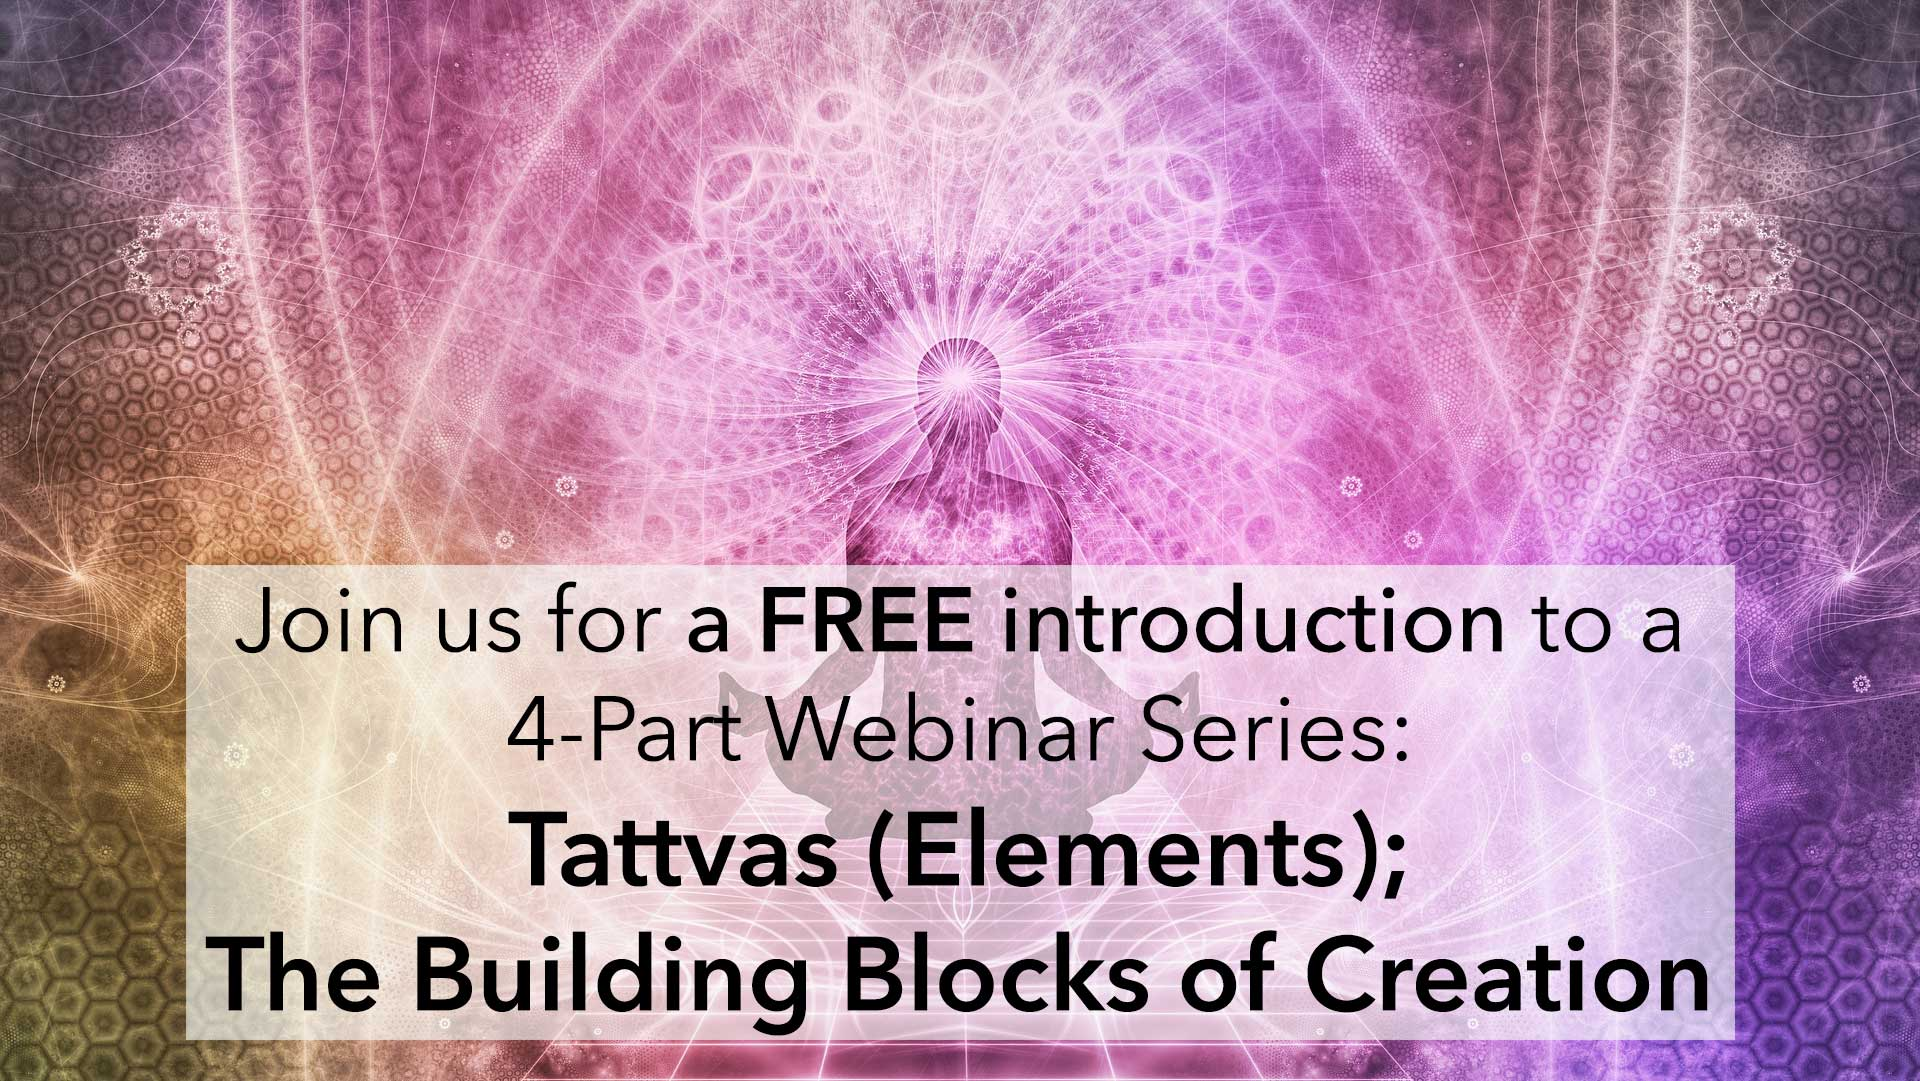 Join us for a FREE introduction to a 4-Part Webinar Series: Tattvas (Elements); The Building Blocks of Creation in Kashmir Shaivism